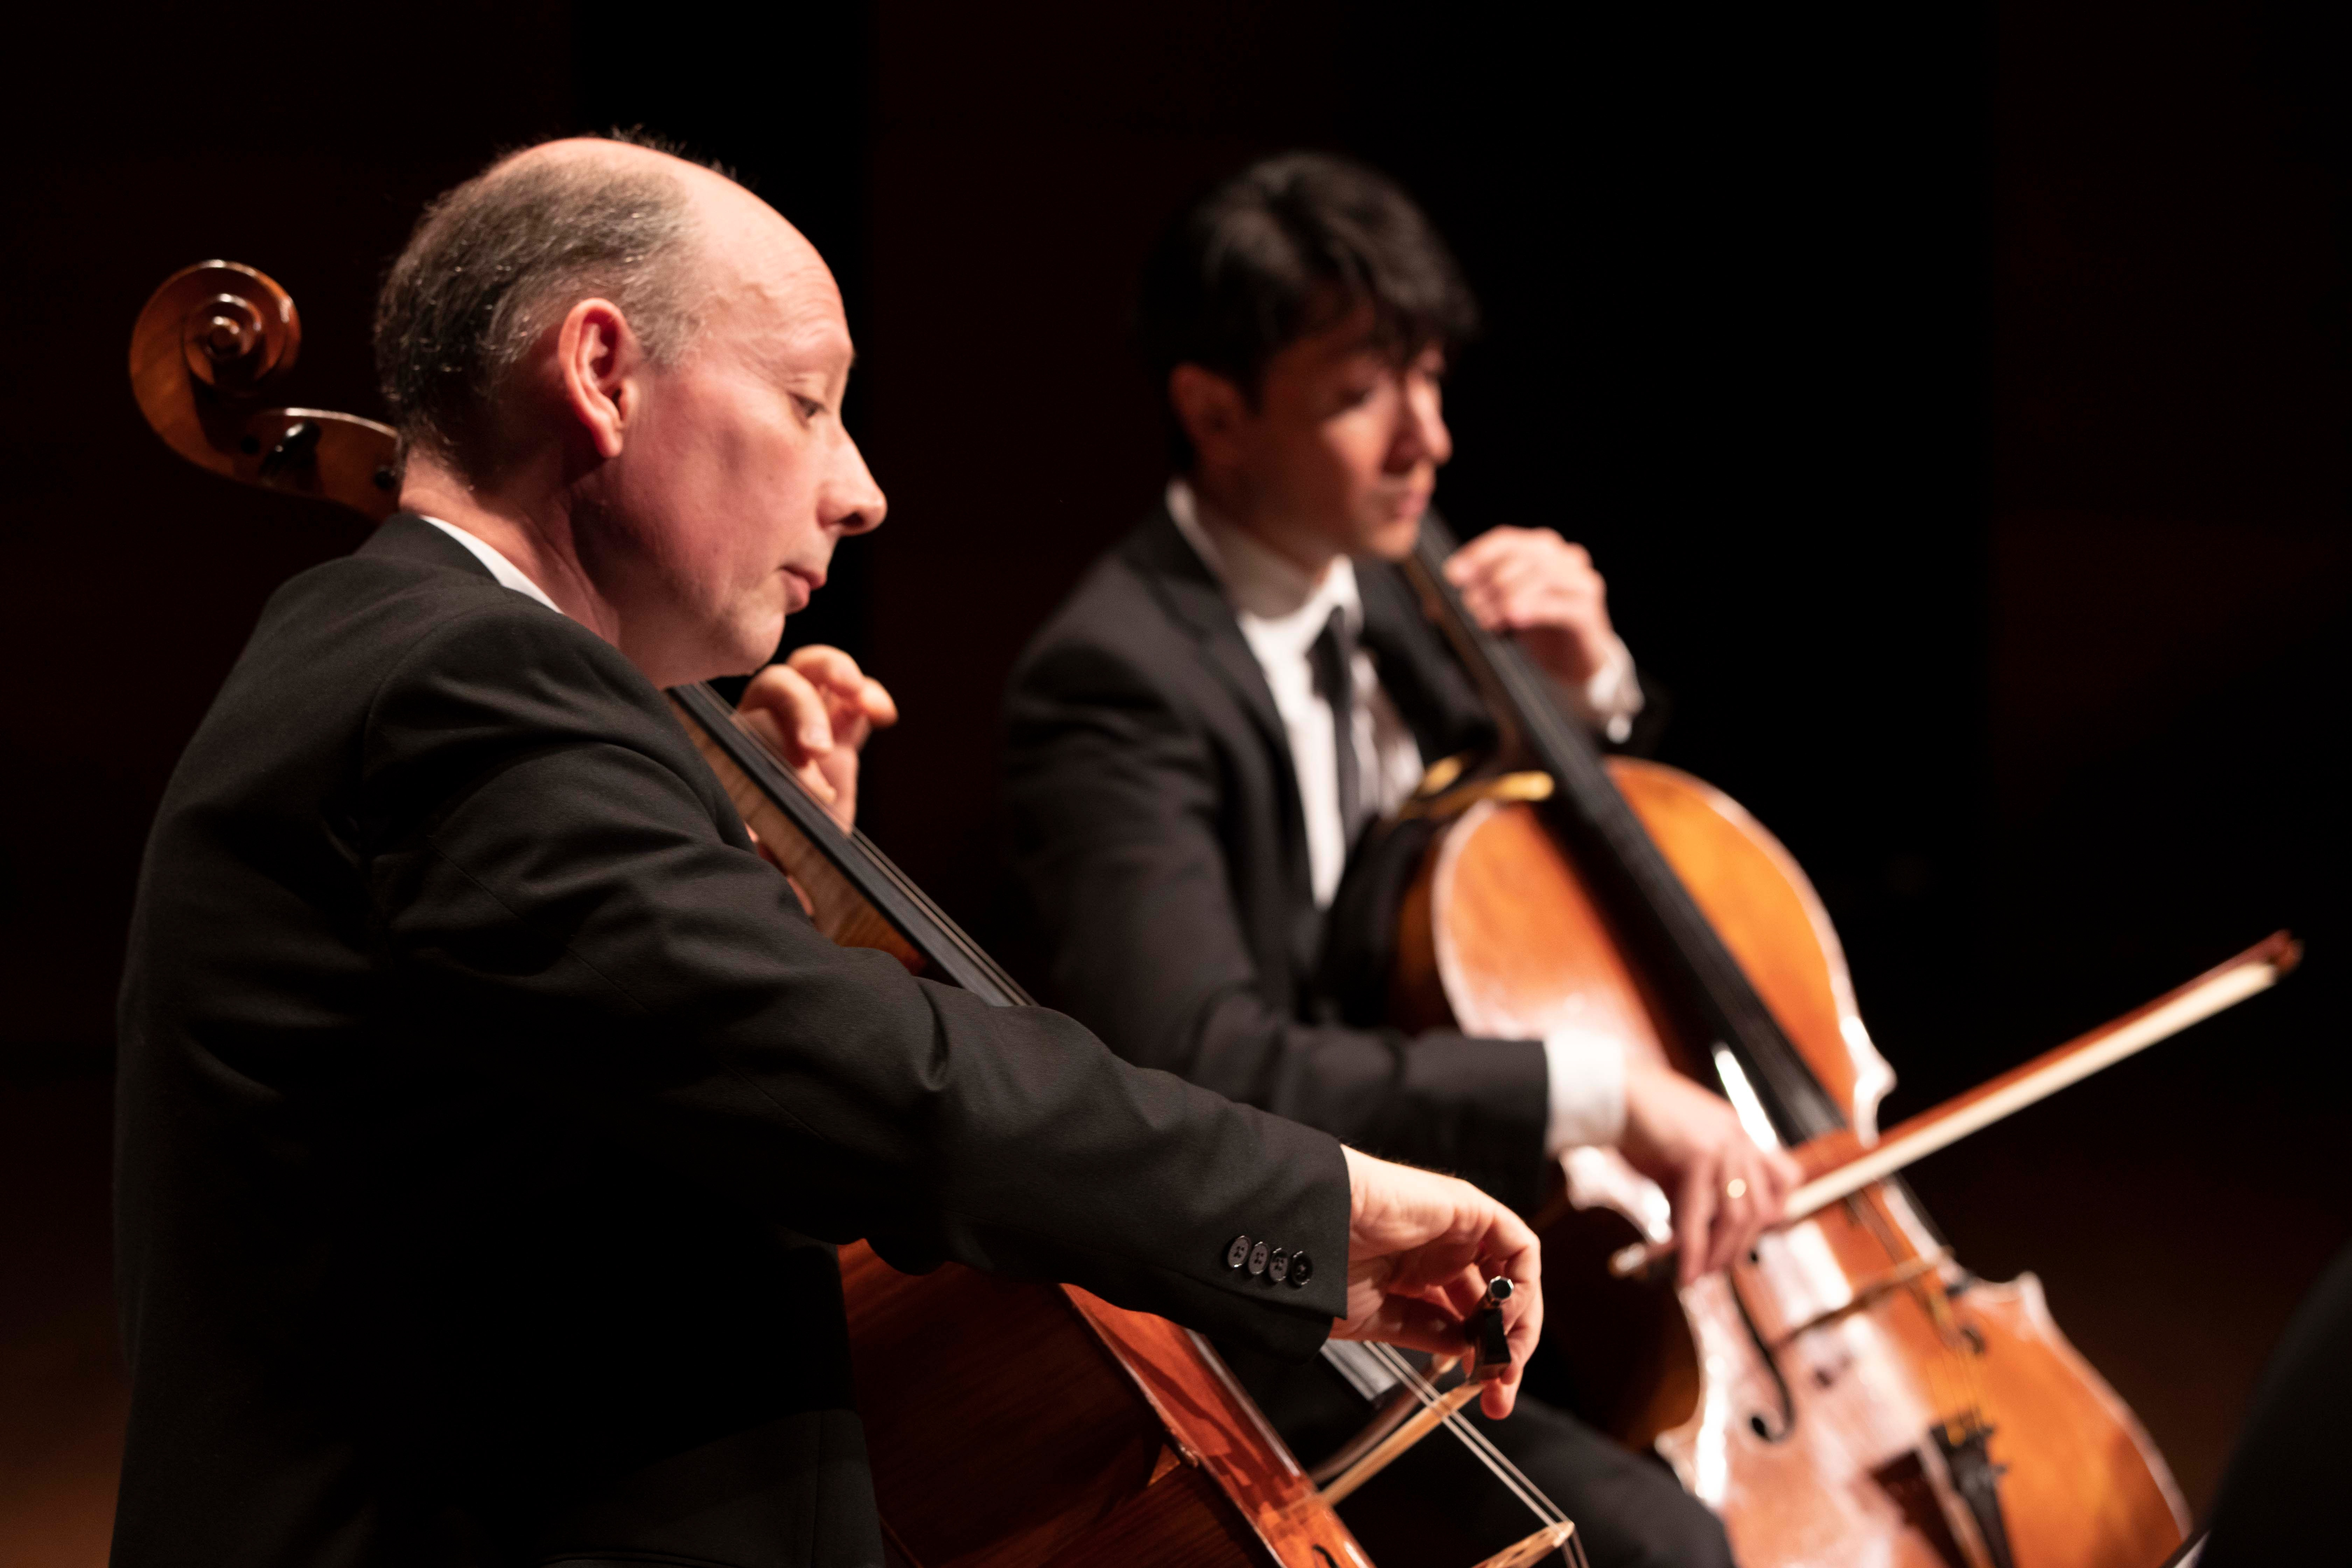 Two cellists, one in foreground, one in blurred background, wearing suits perform on darkened stage.